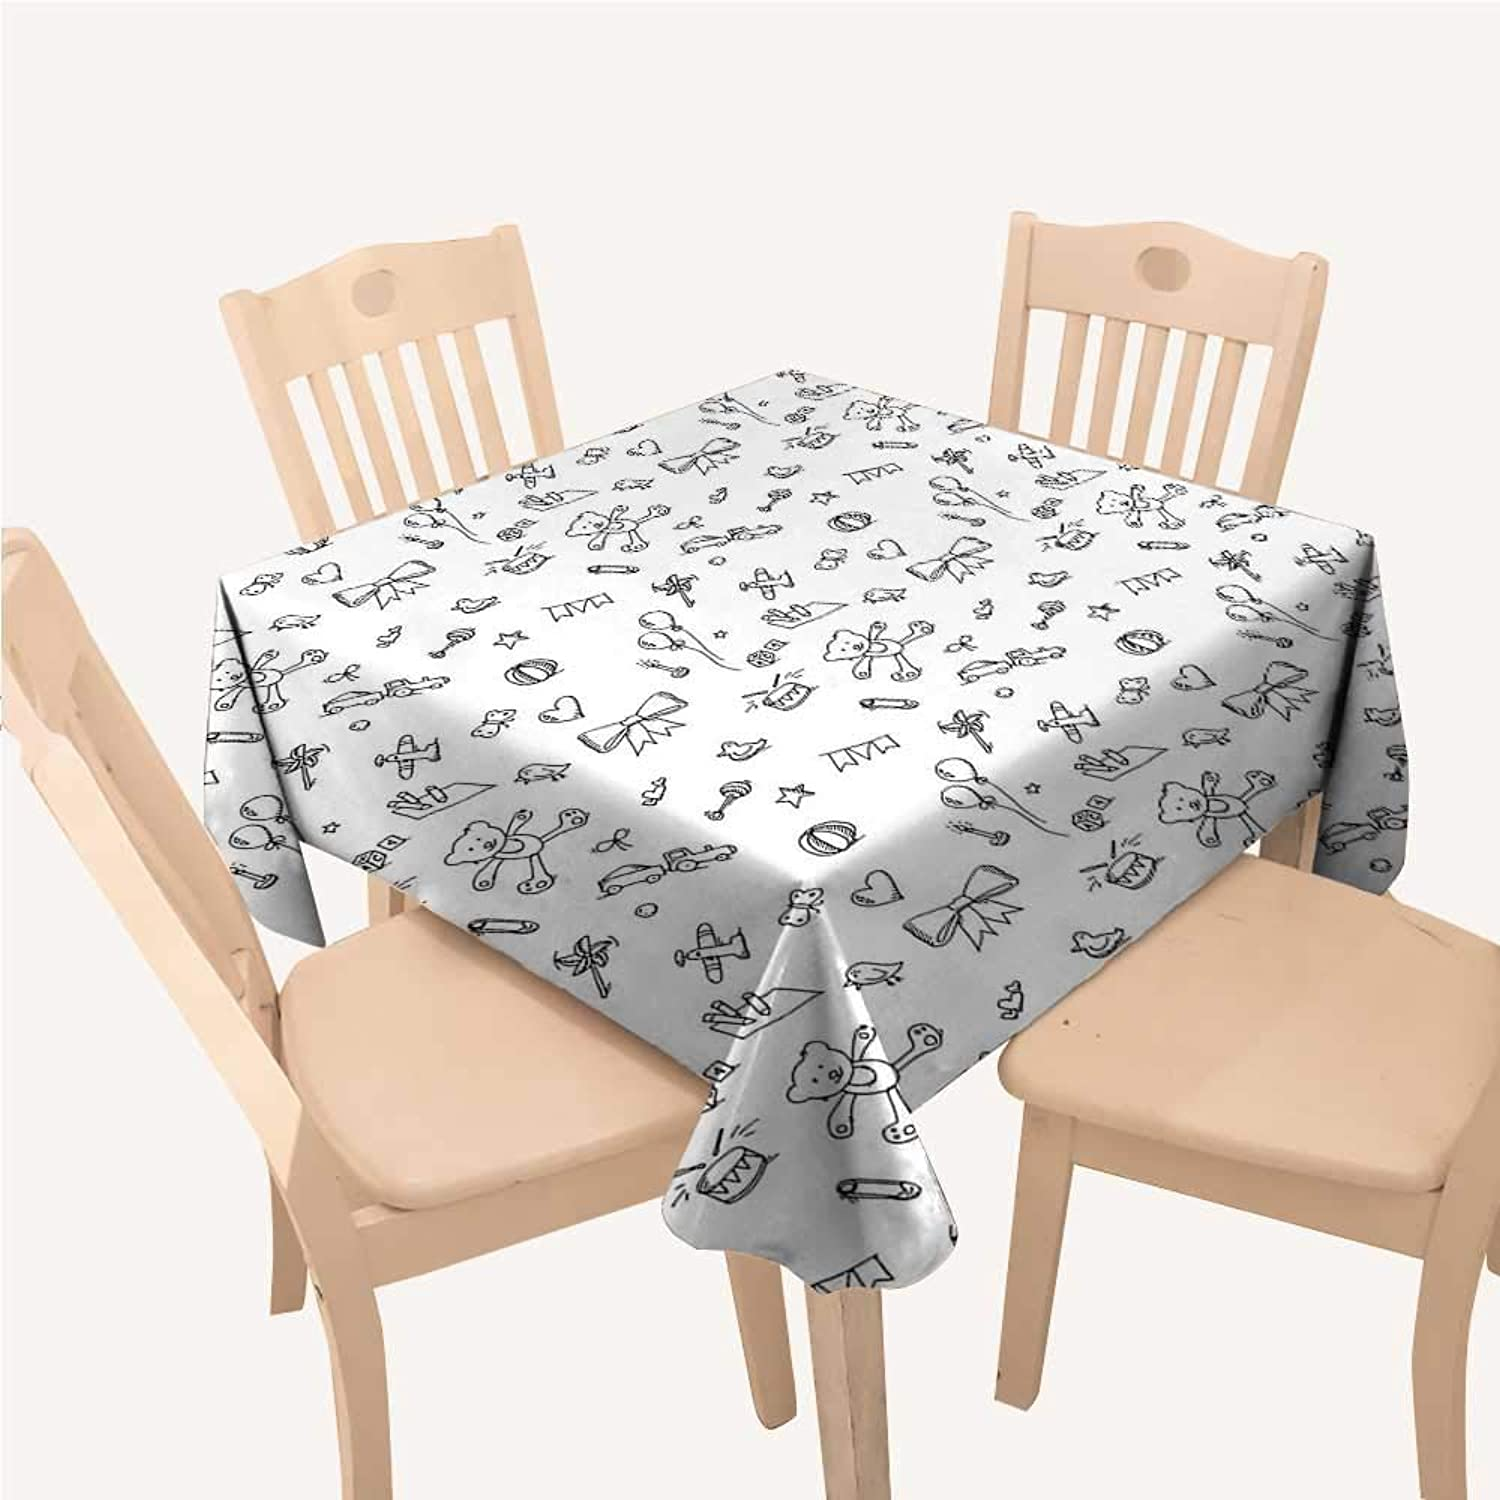 WilliamsDecor Kids Dinning Table Covers Cute Baby Icons Doodle Style Various Toy Figures Newborn Toddler Scribble CollectionBlack White Square Tablecloth W60 xL60 inch